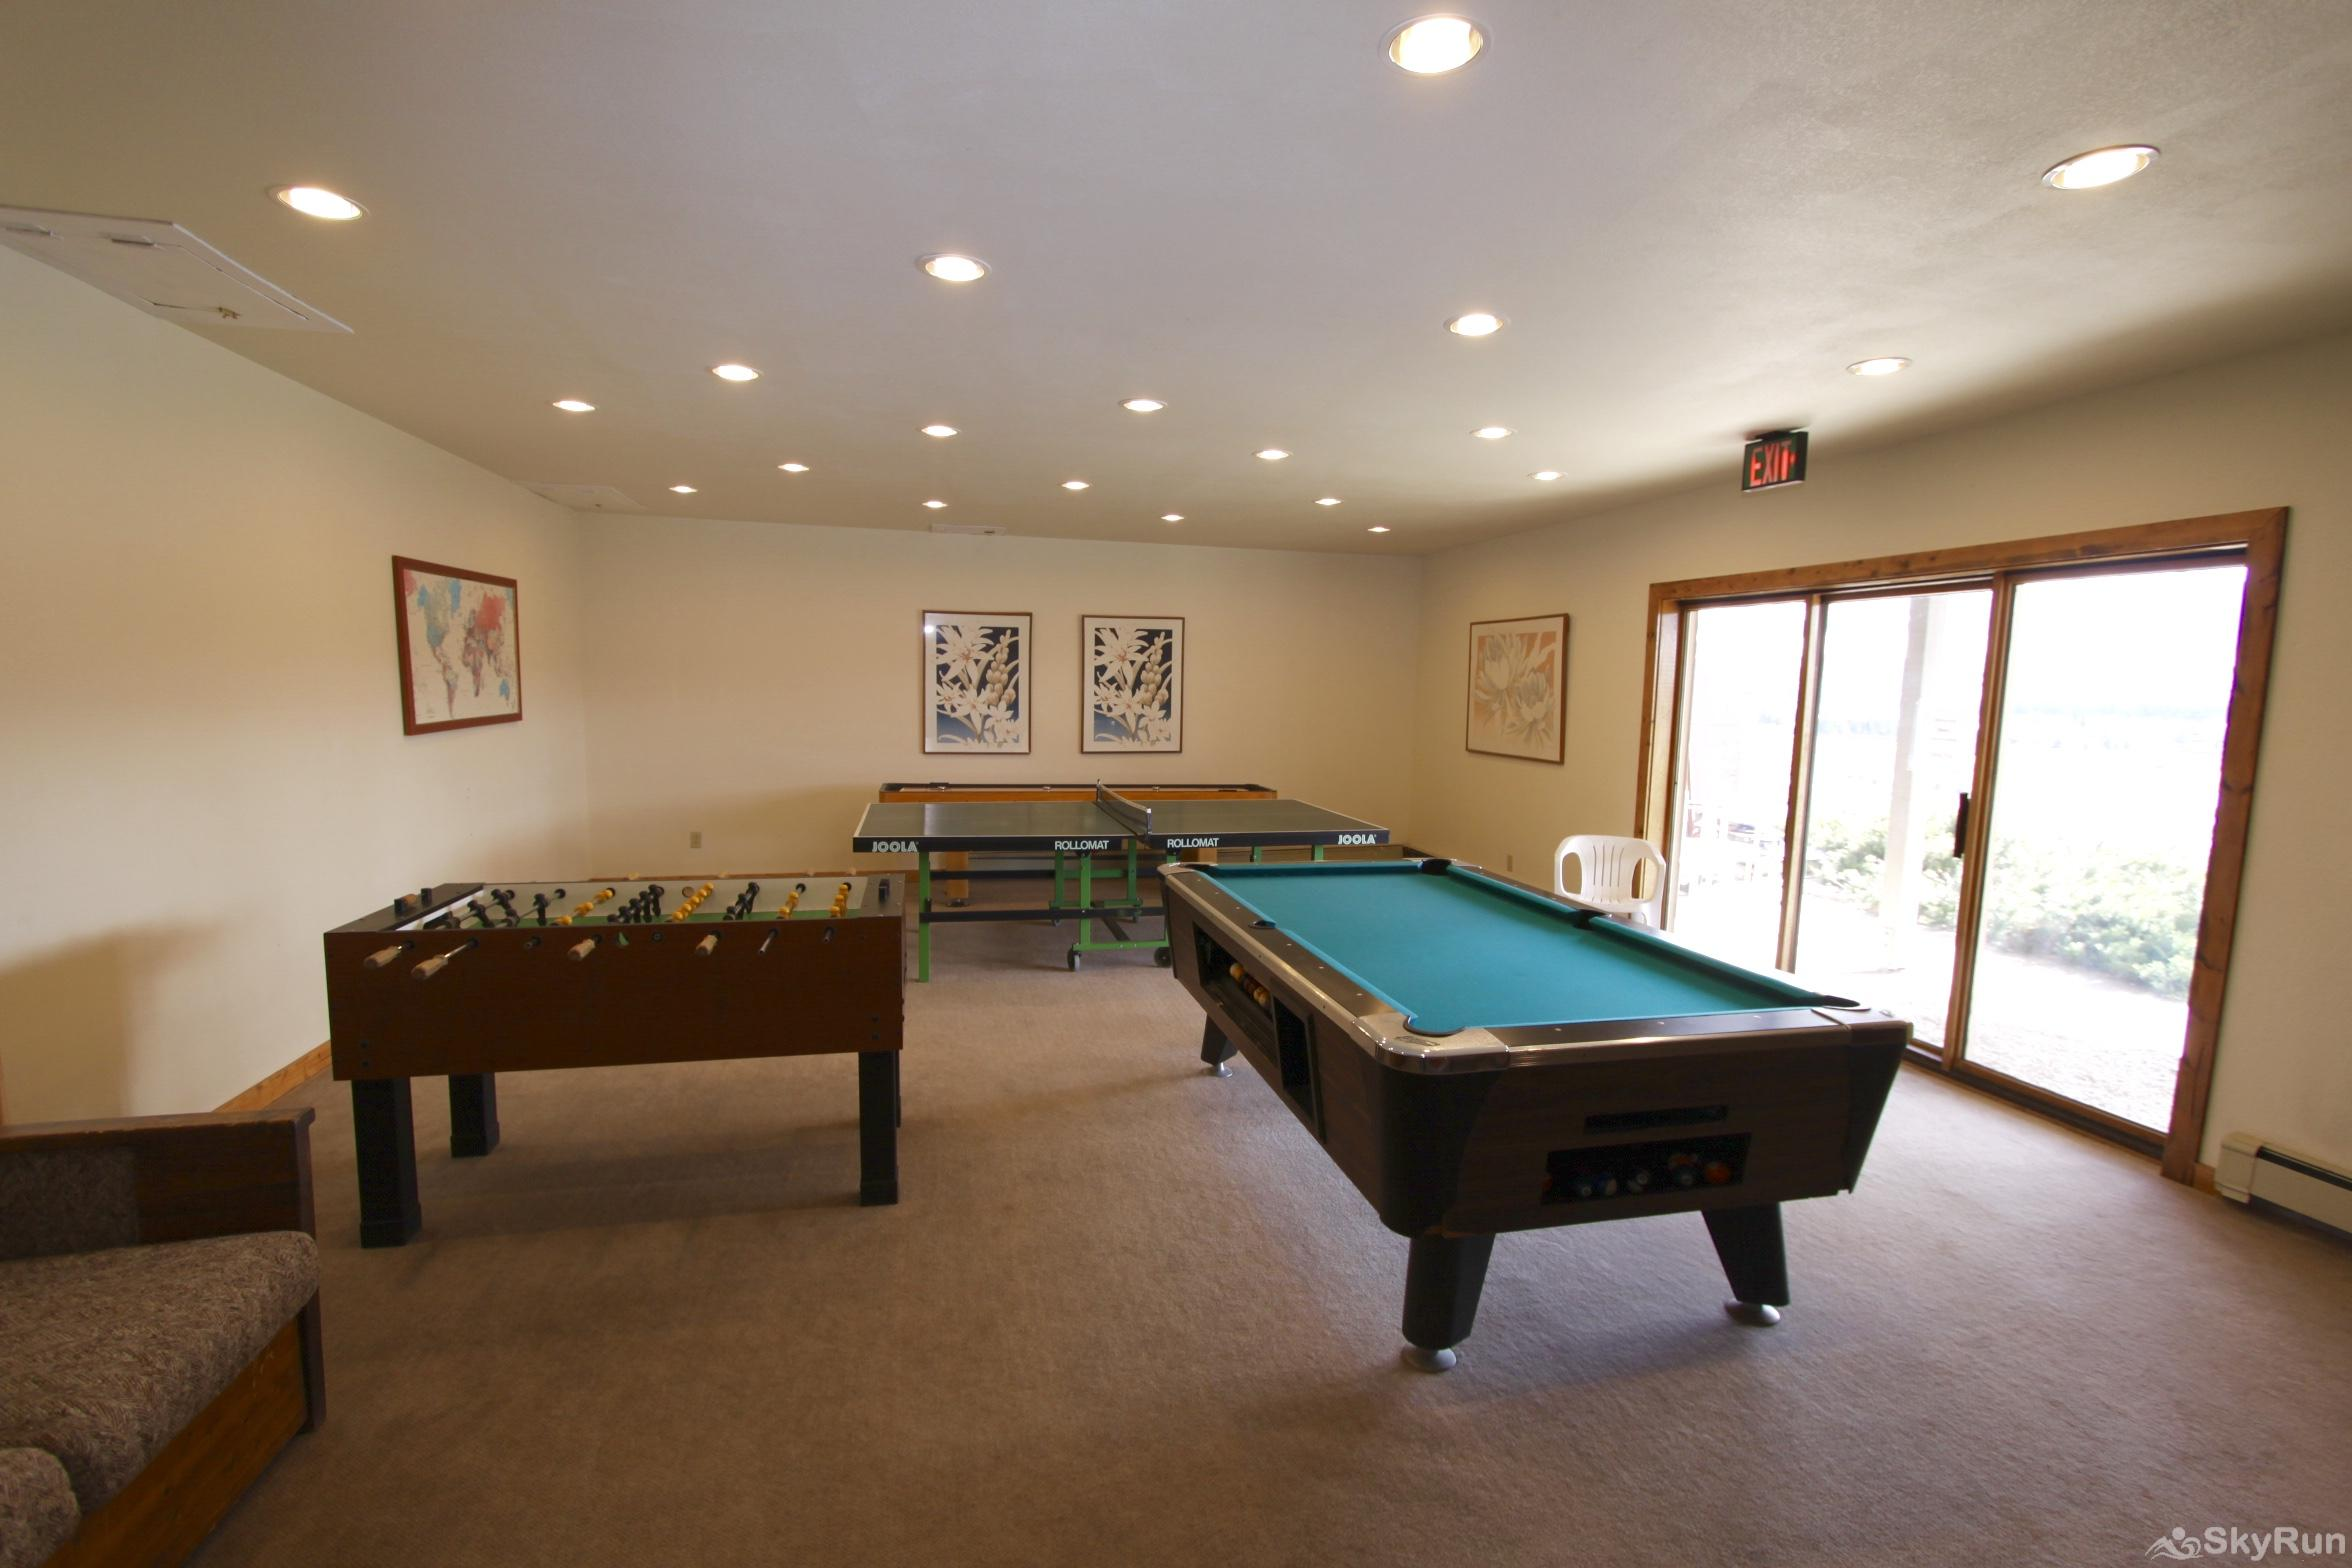 113B WPTC - Cranmer Rd Game Room